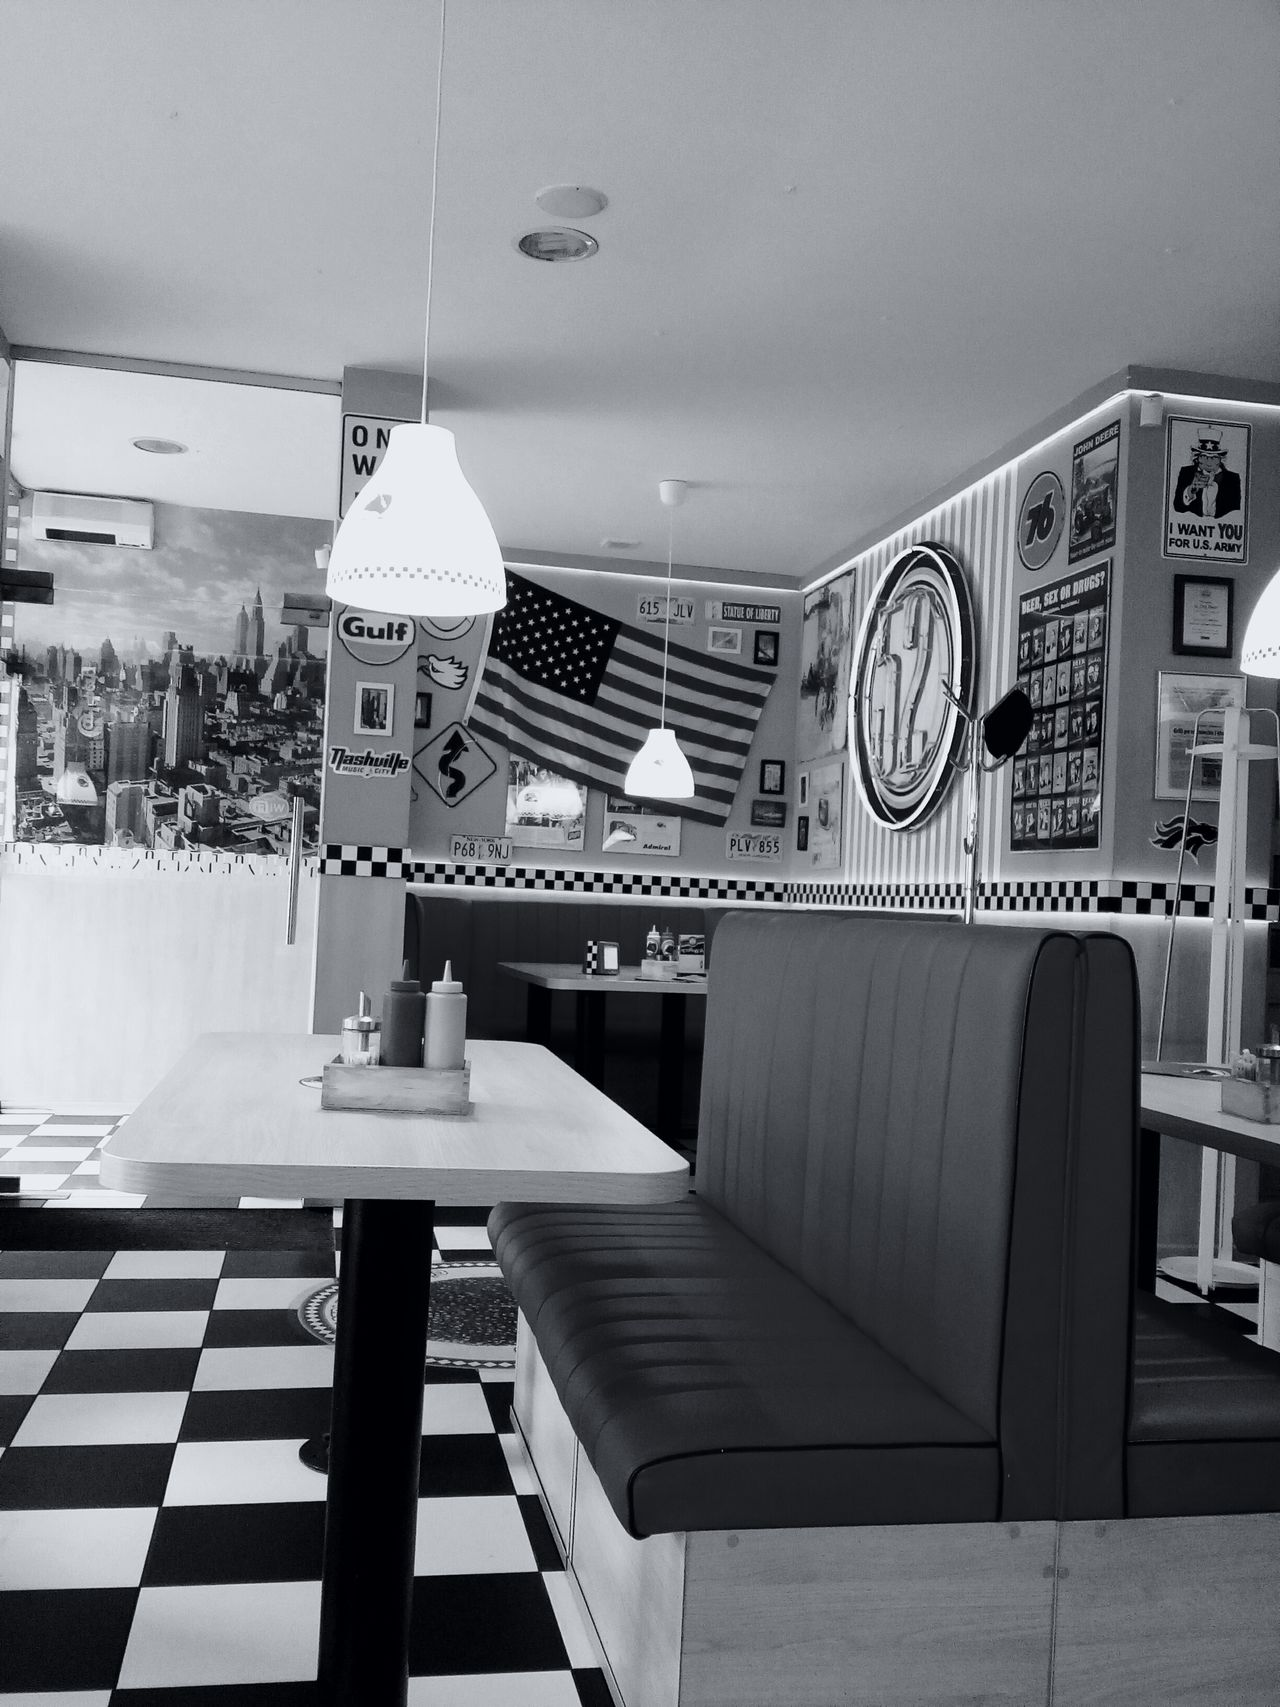 America Bydgoszcz Poland Diner City52 American Flag Restaurant Bar Amaturephotography Blackandwhite